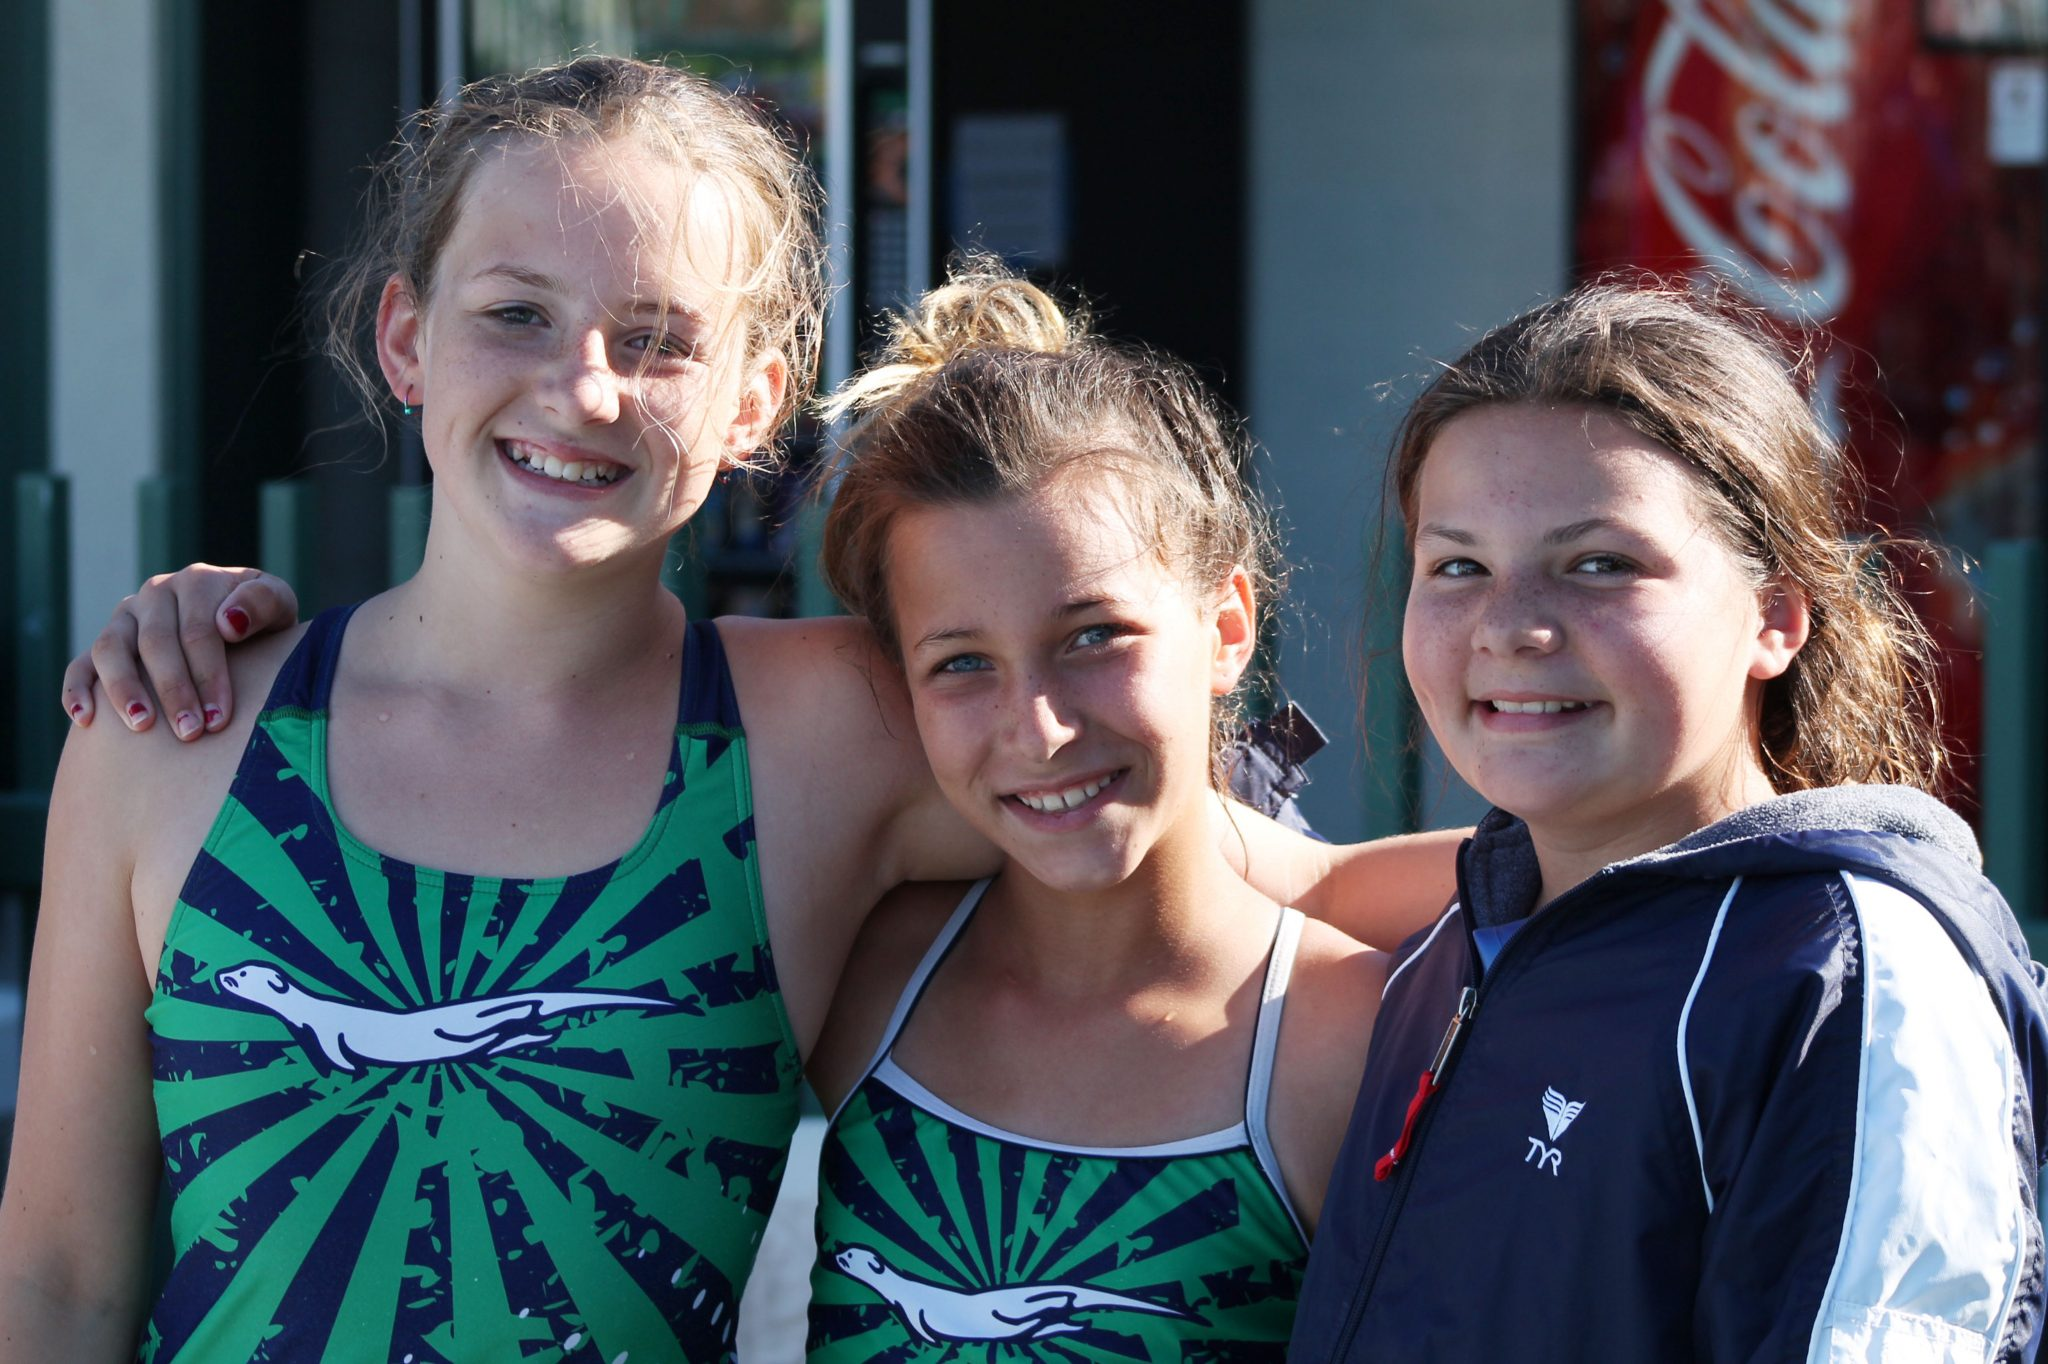 Martinez Community Swim Team members Rosie Deilke, Ariel Friedman and Grace Barnacal take a break for a picture at the Devil Mountain Pentathlon on Saturday, July 9-10, in Clayton. (TRACY PICO / Courtesy)